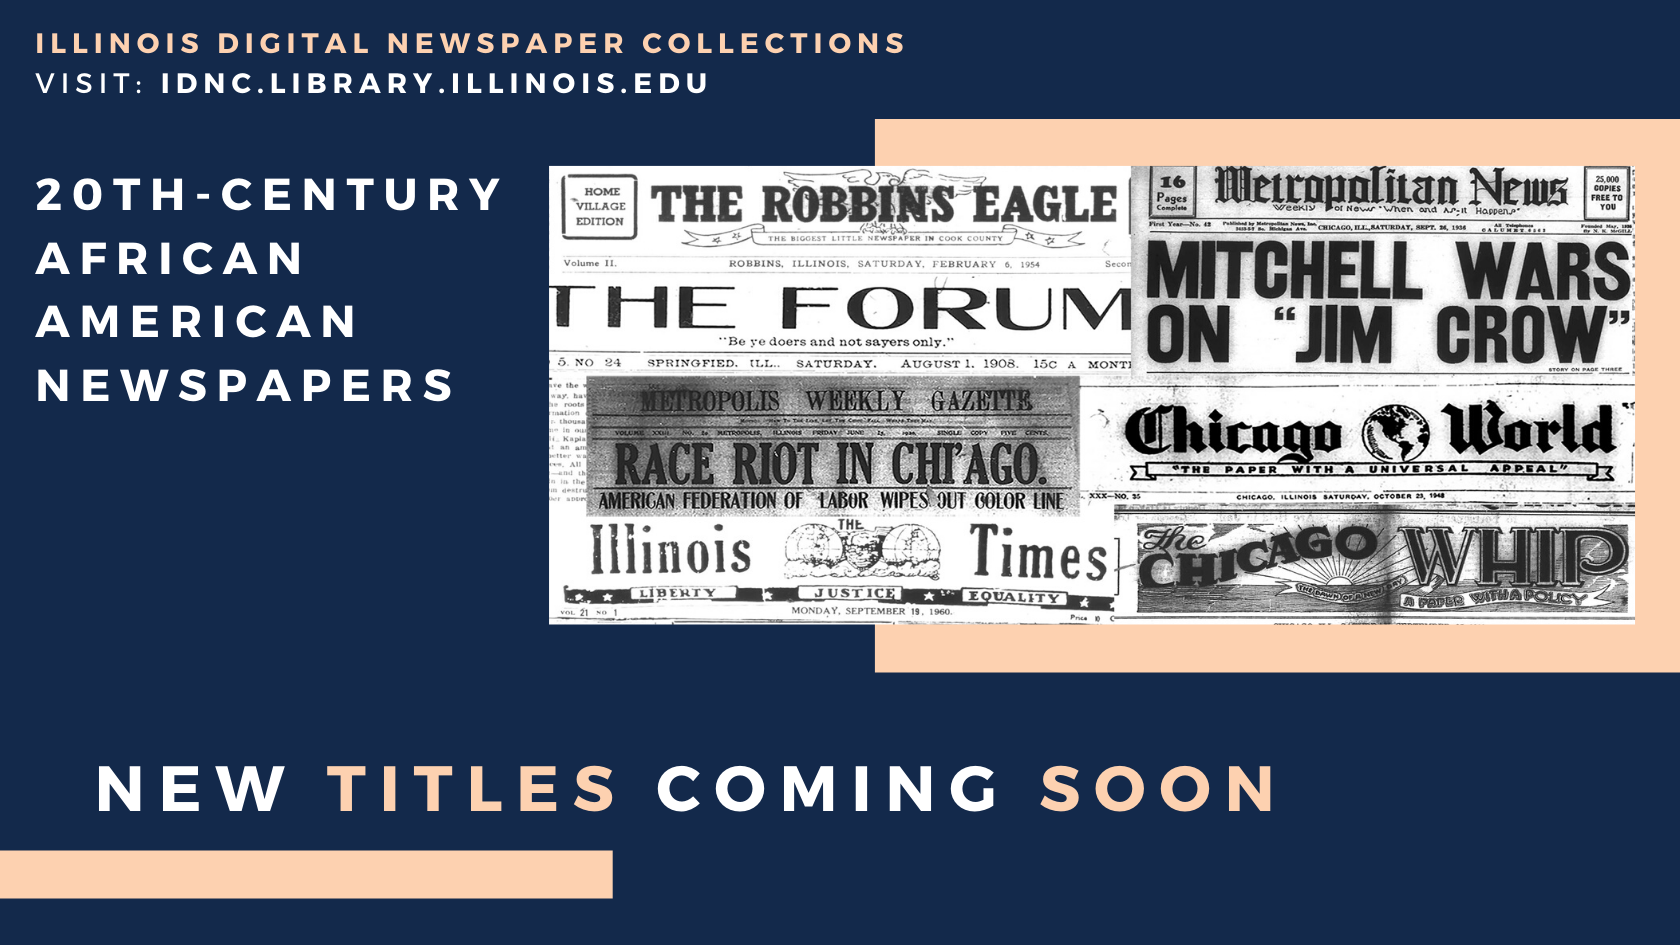 Graphic: Illinois Digital Newspaper Collections, Visit: IDNC.LIBRARY.ILLINOIS.EDU, 20th-Century African American Newspapers, New Titles Coming Soon